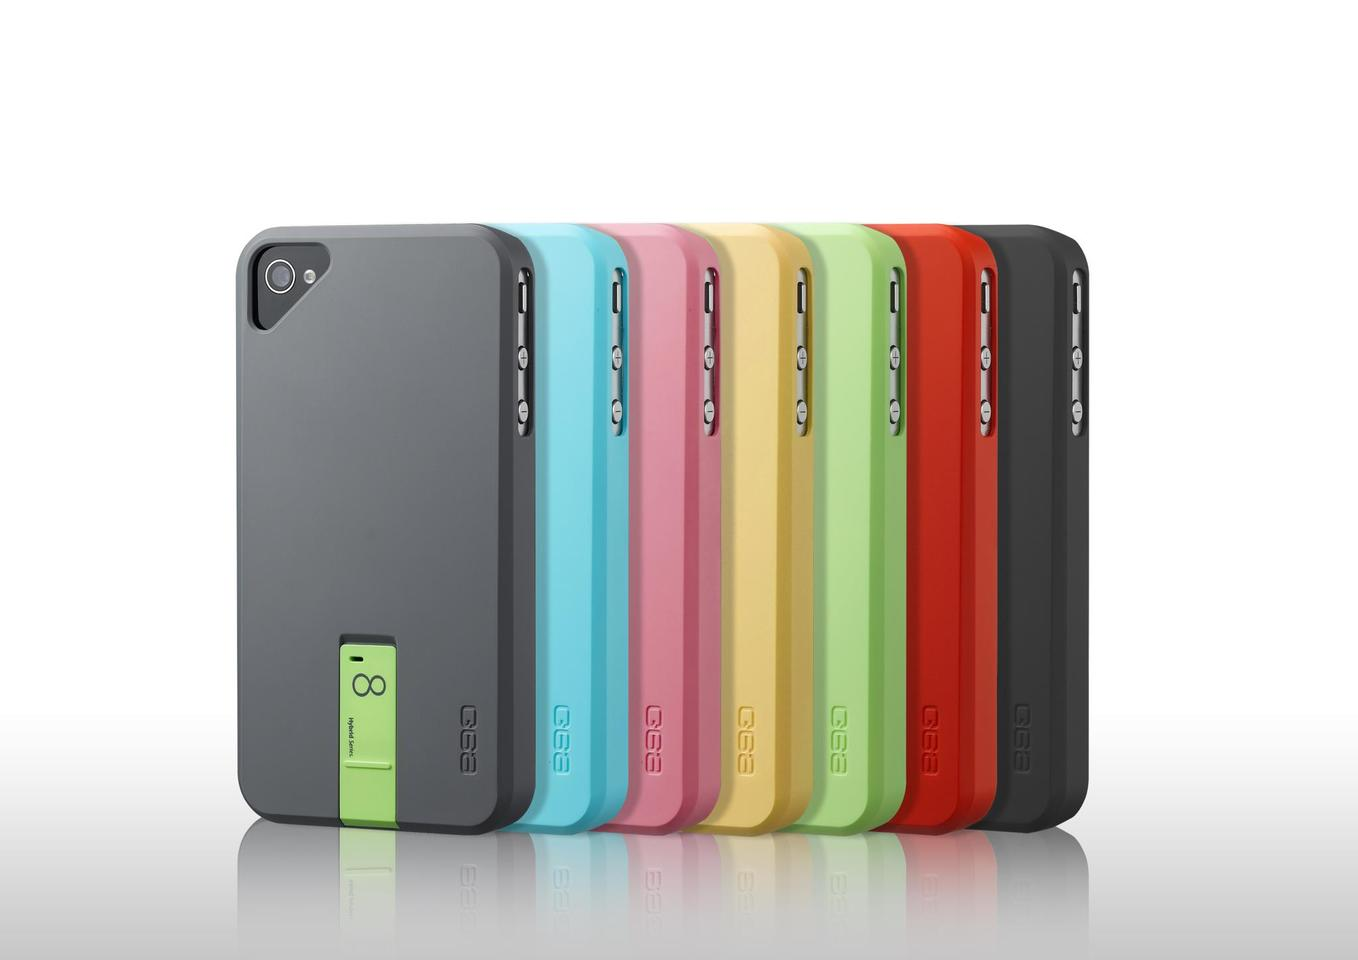 The Hybrid Series USB Case is an iPhone 4/4S case with a built-in removable Flash drive